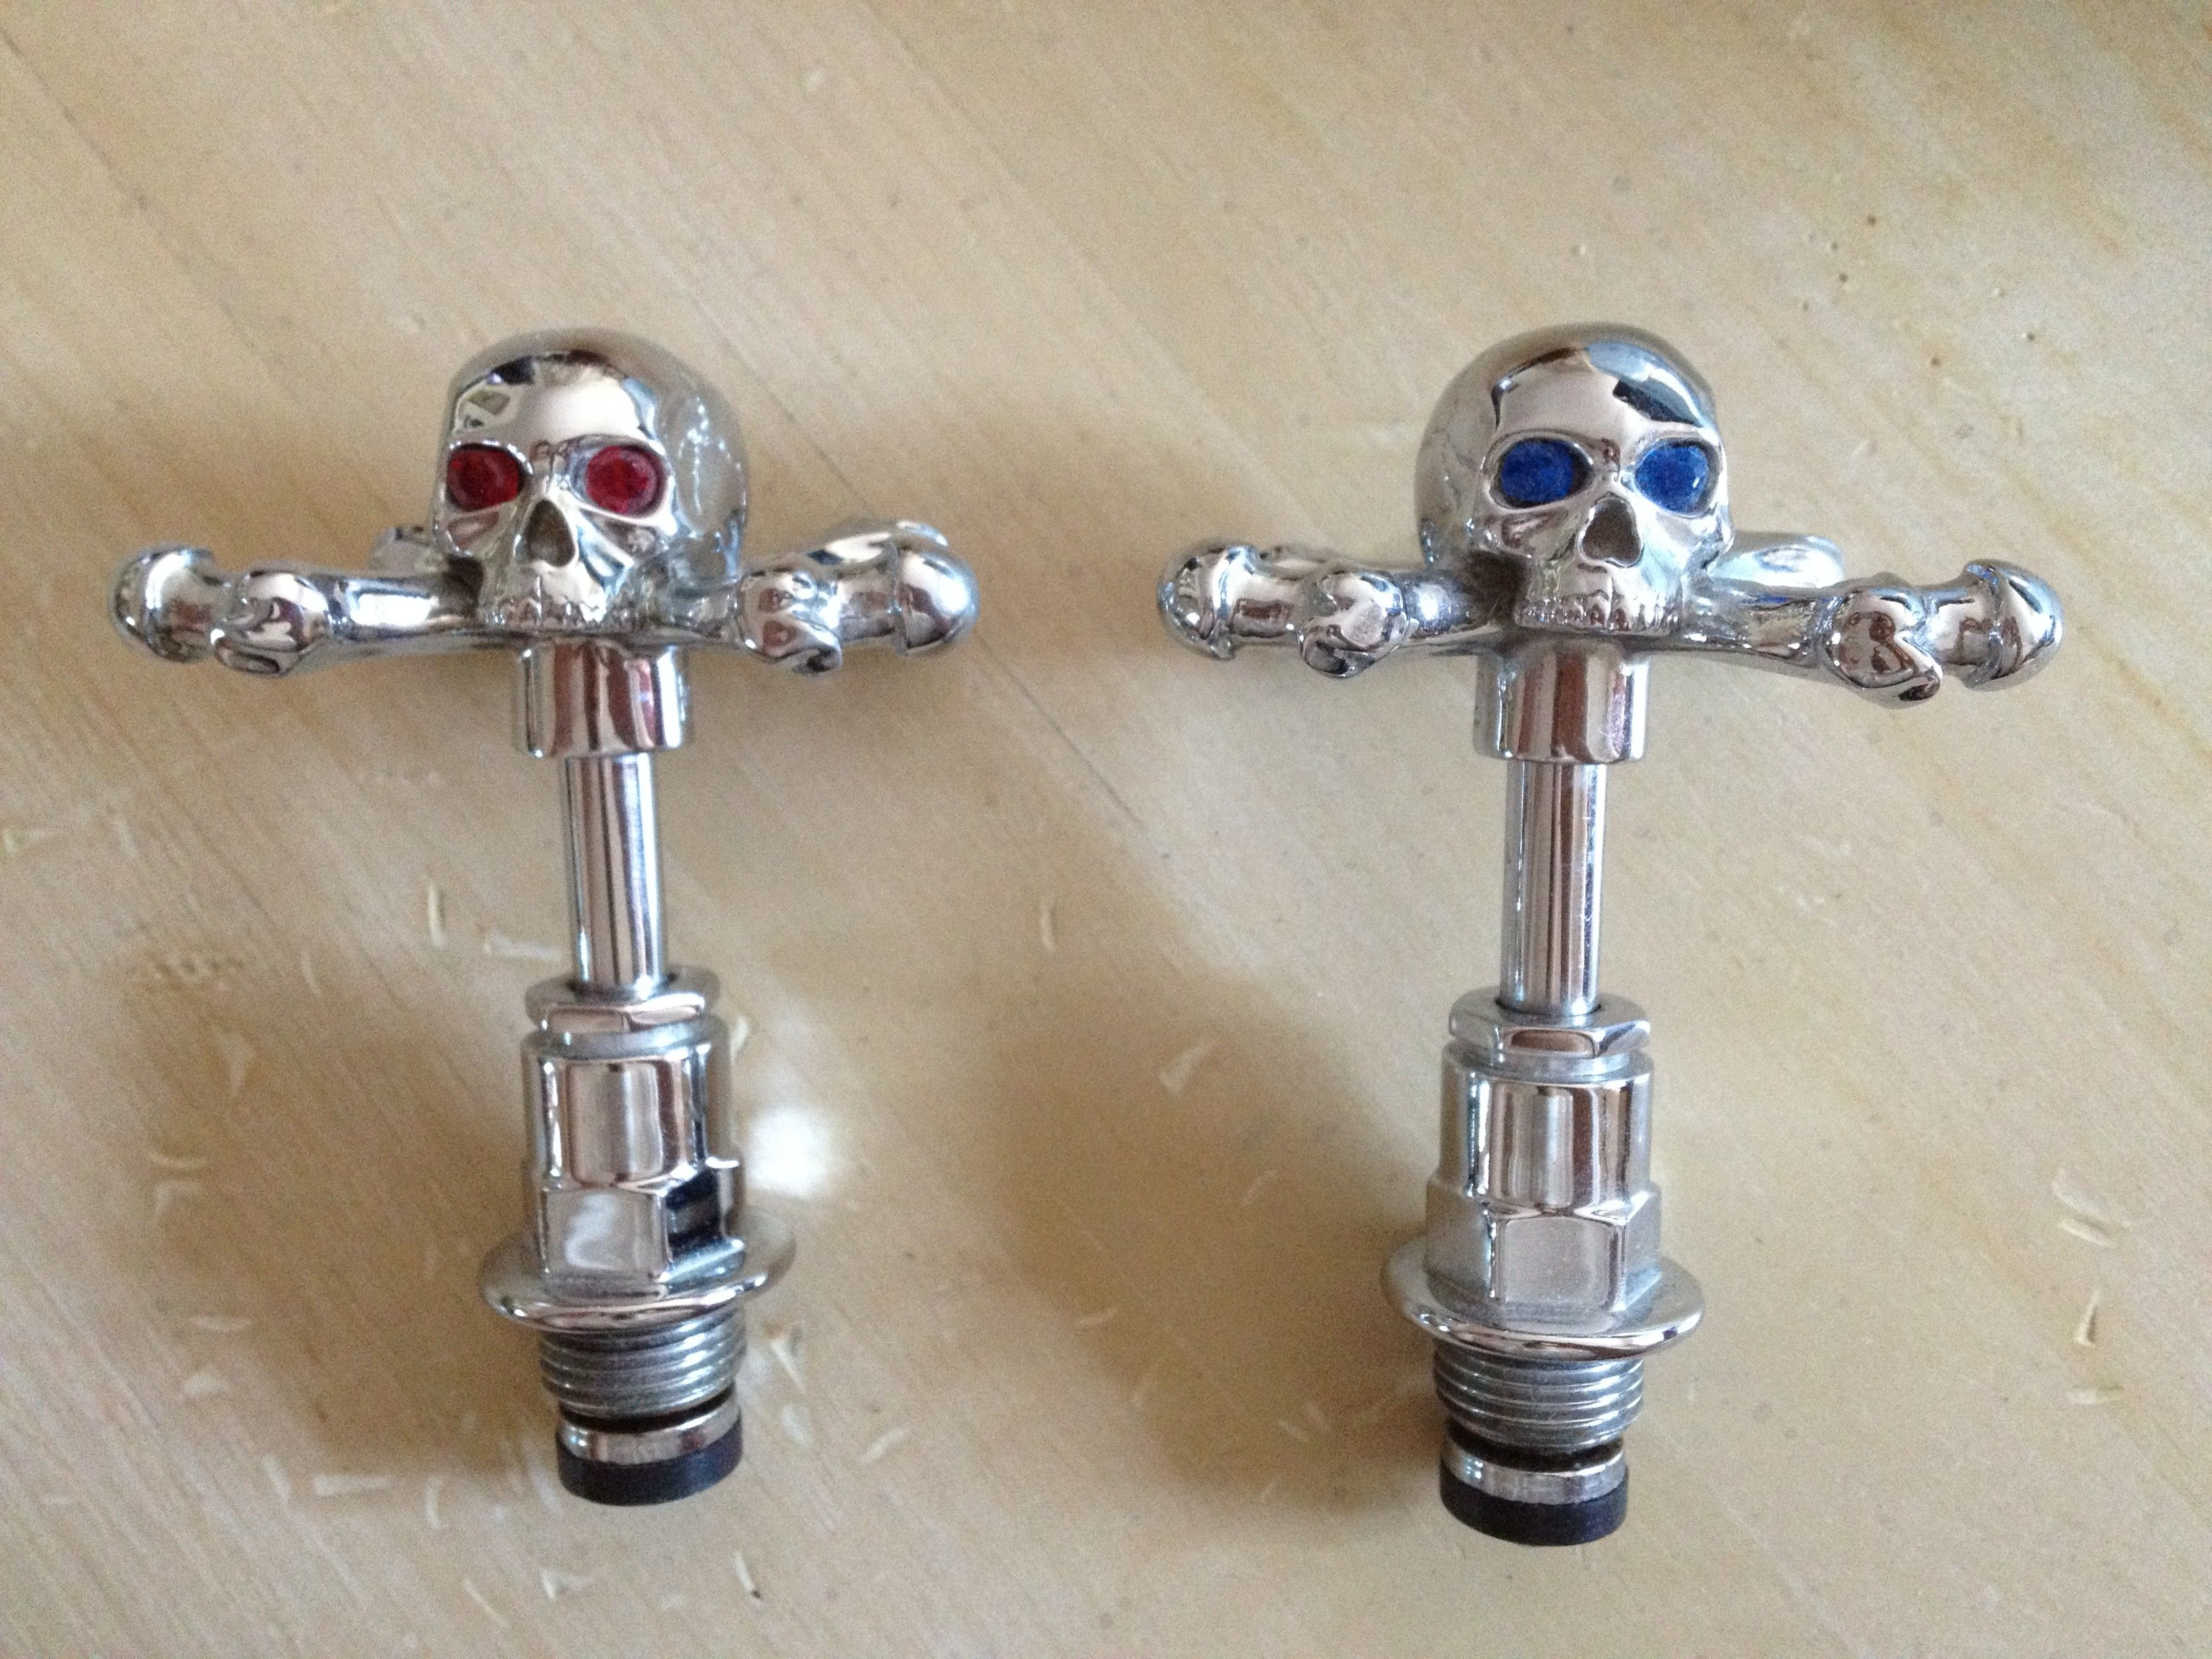 Stephen Eihorn #skull faucet inserts from Use.com | Gothic at Home ...